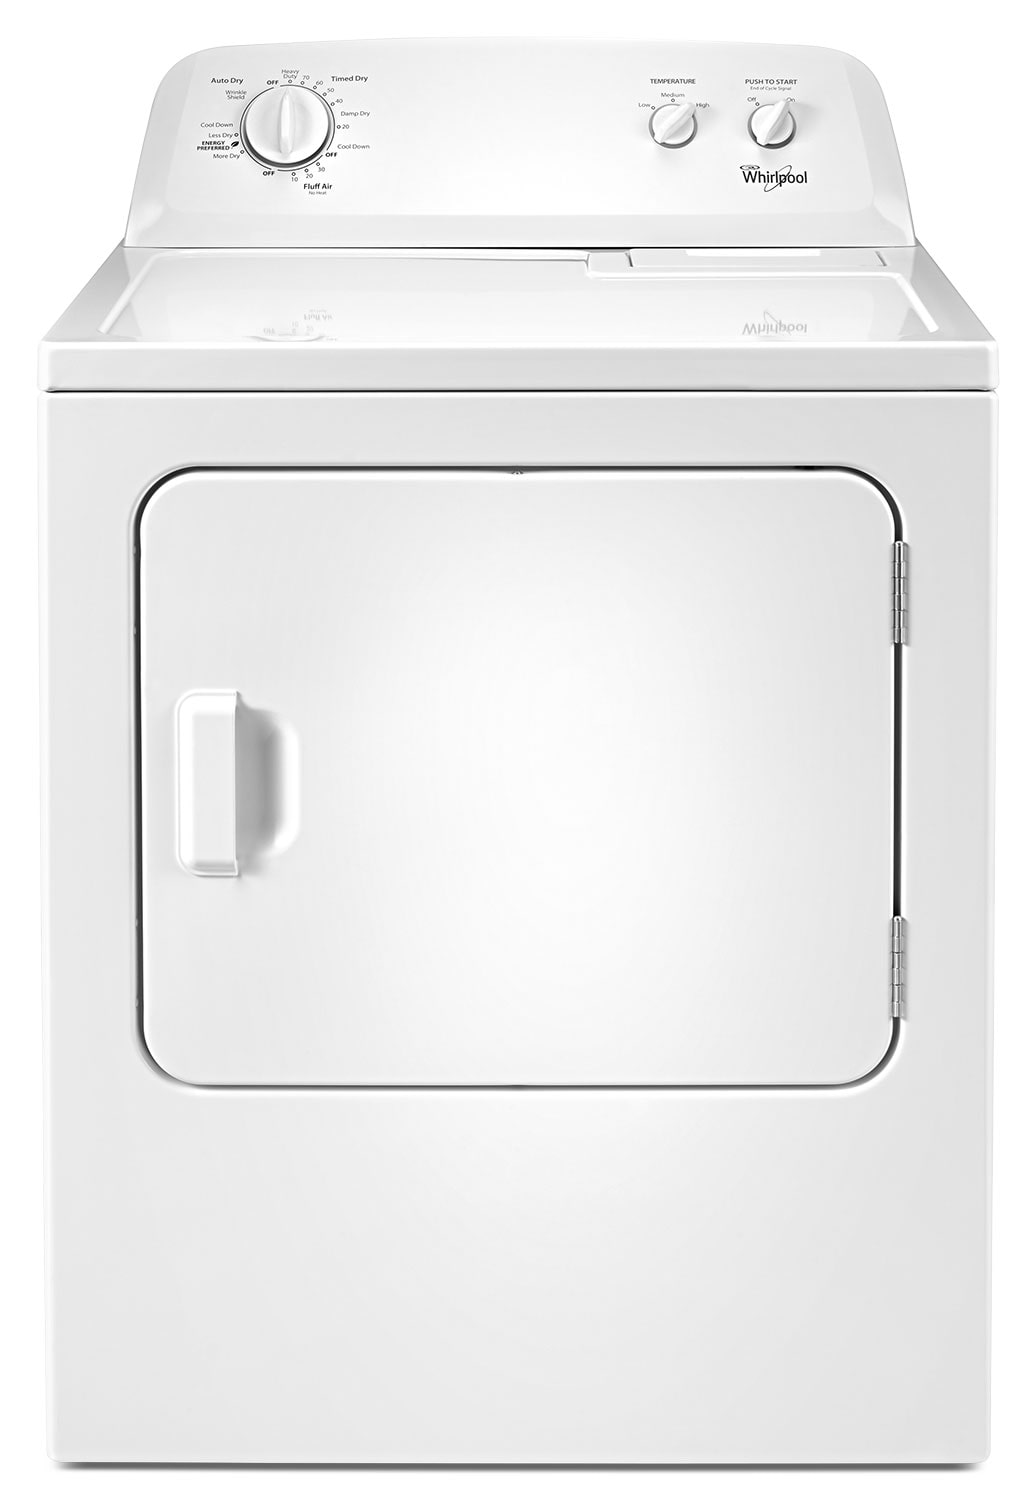 Whirlpool 7.0 Cu. Ft. Electric Dryer – YWED4616FW